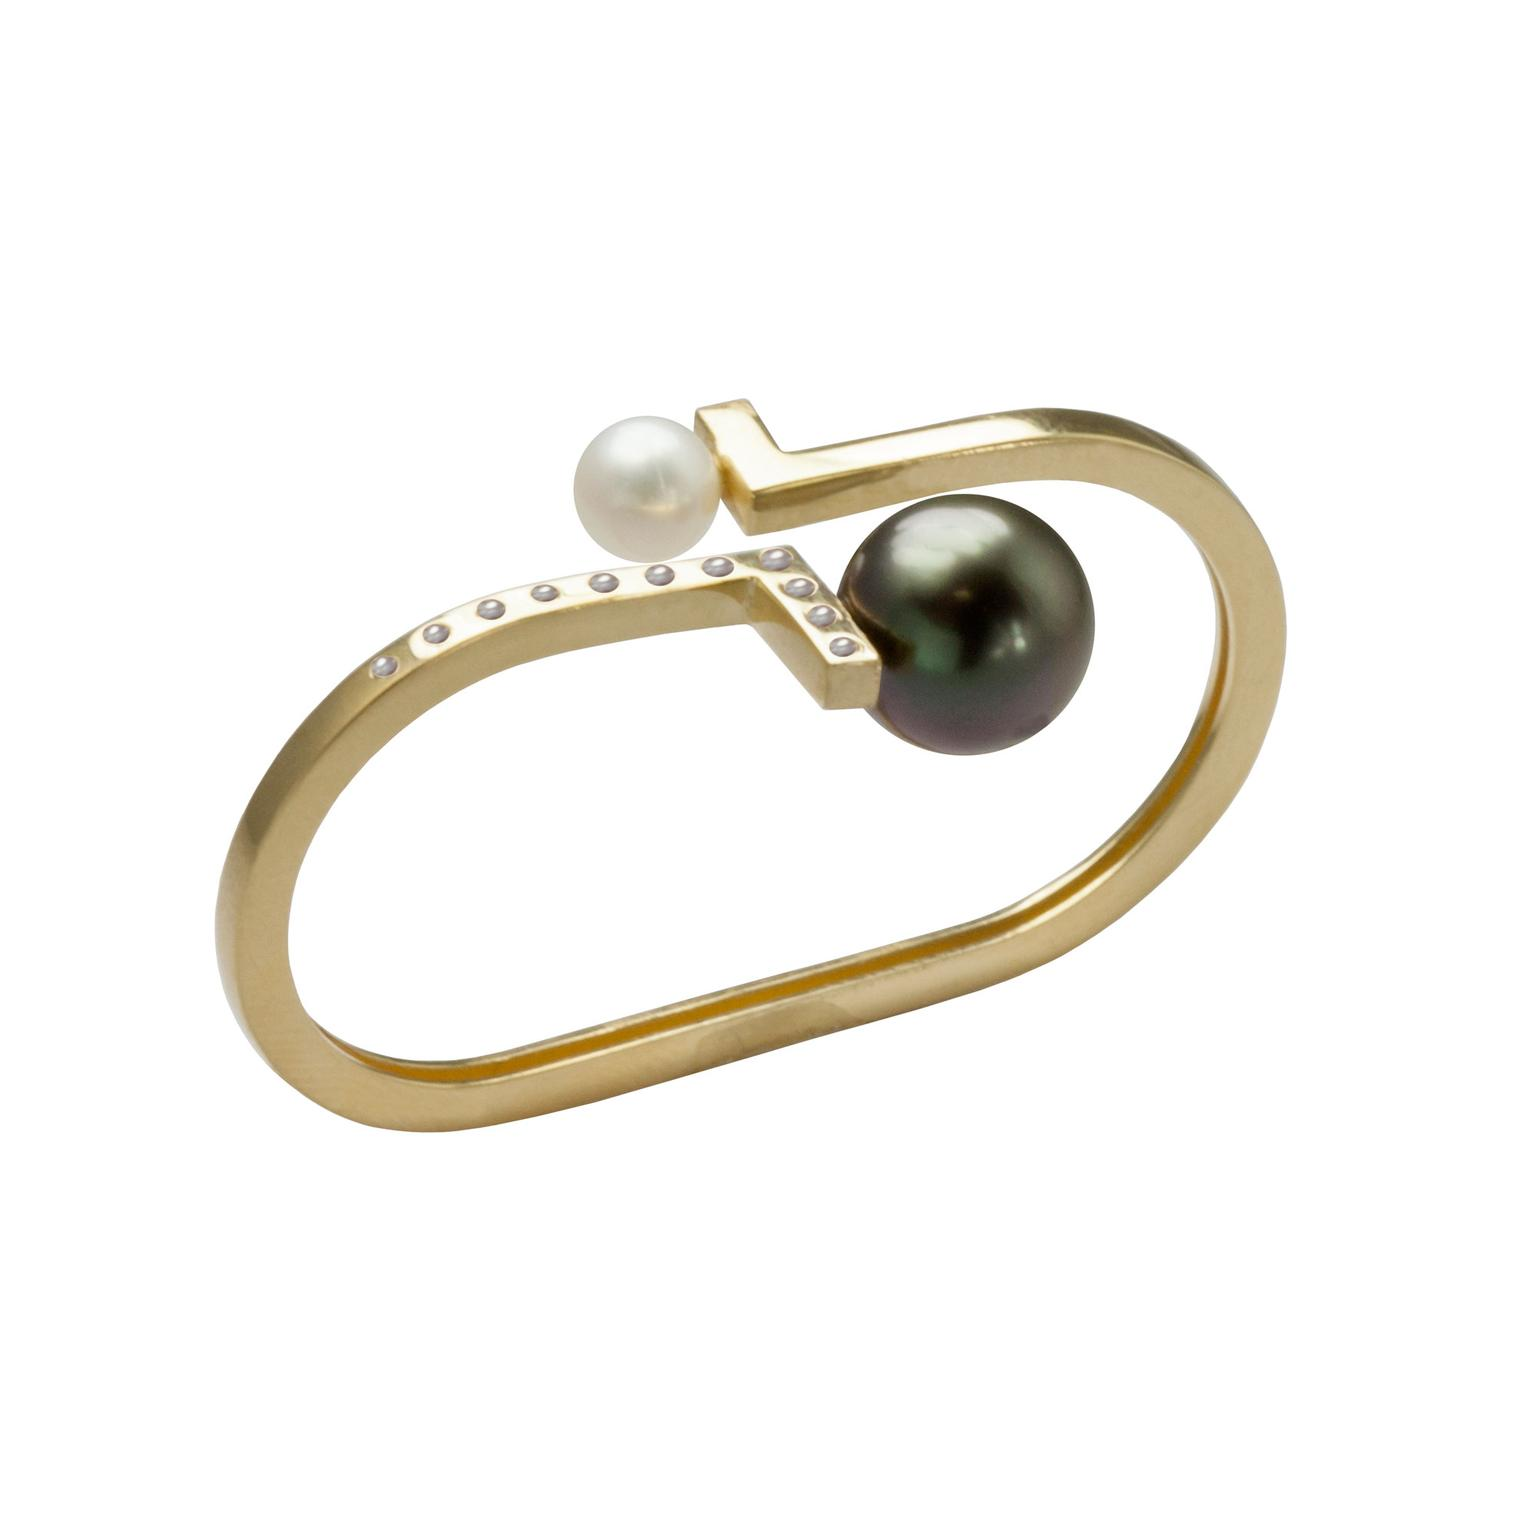 Around the world in luxury jewellery: Tahitian pearls